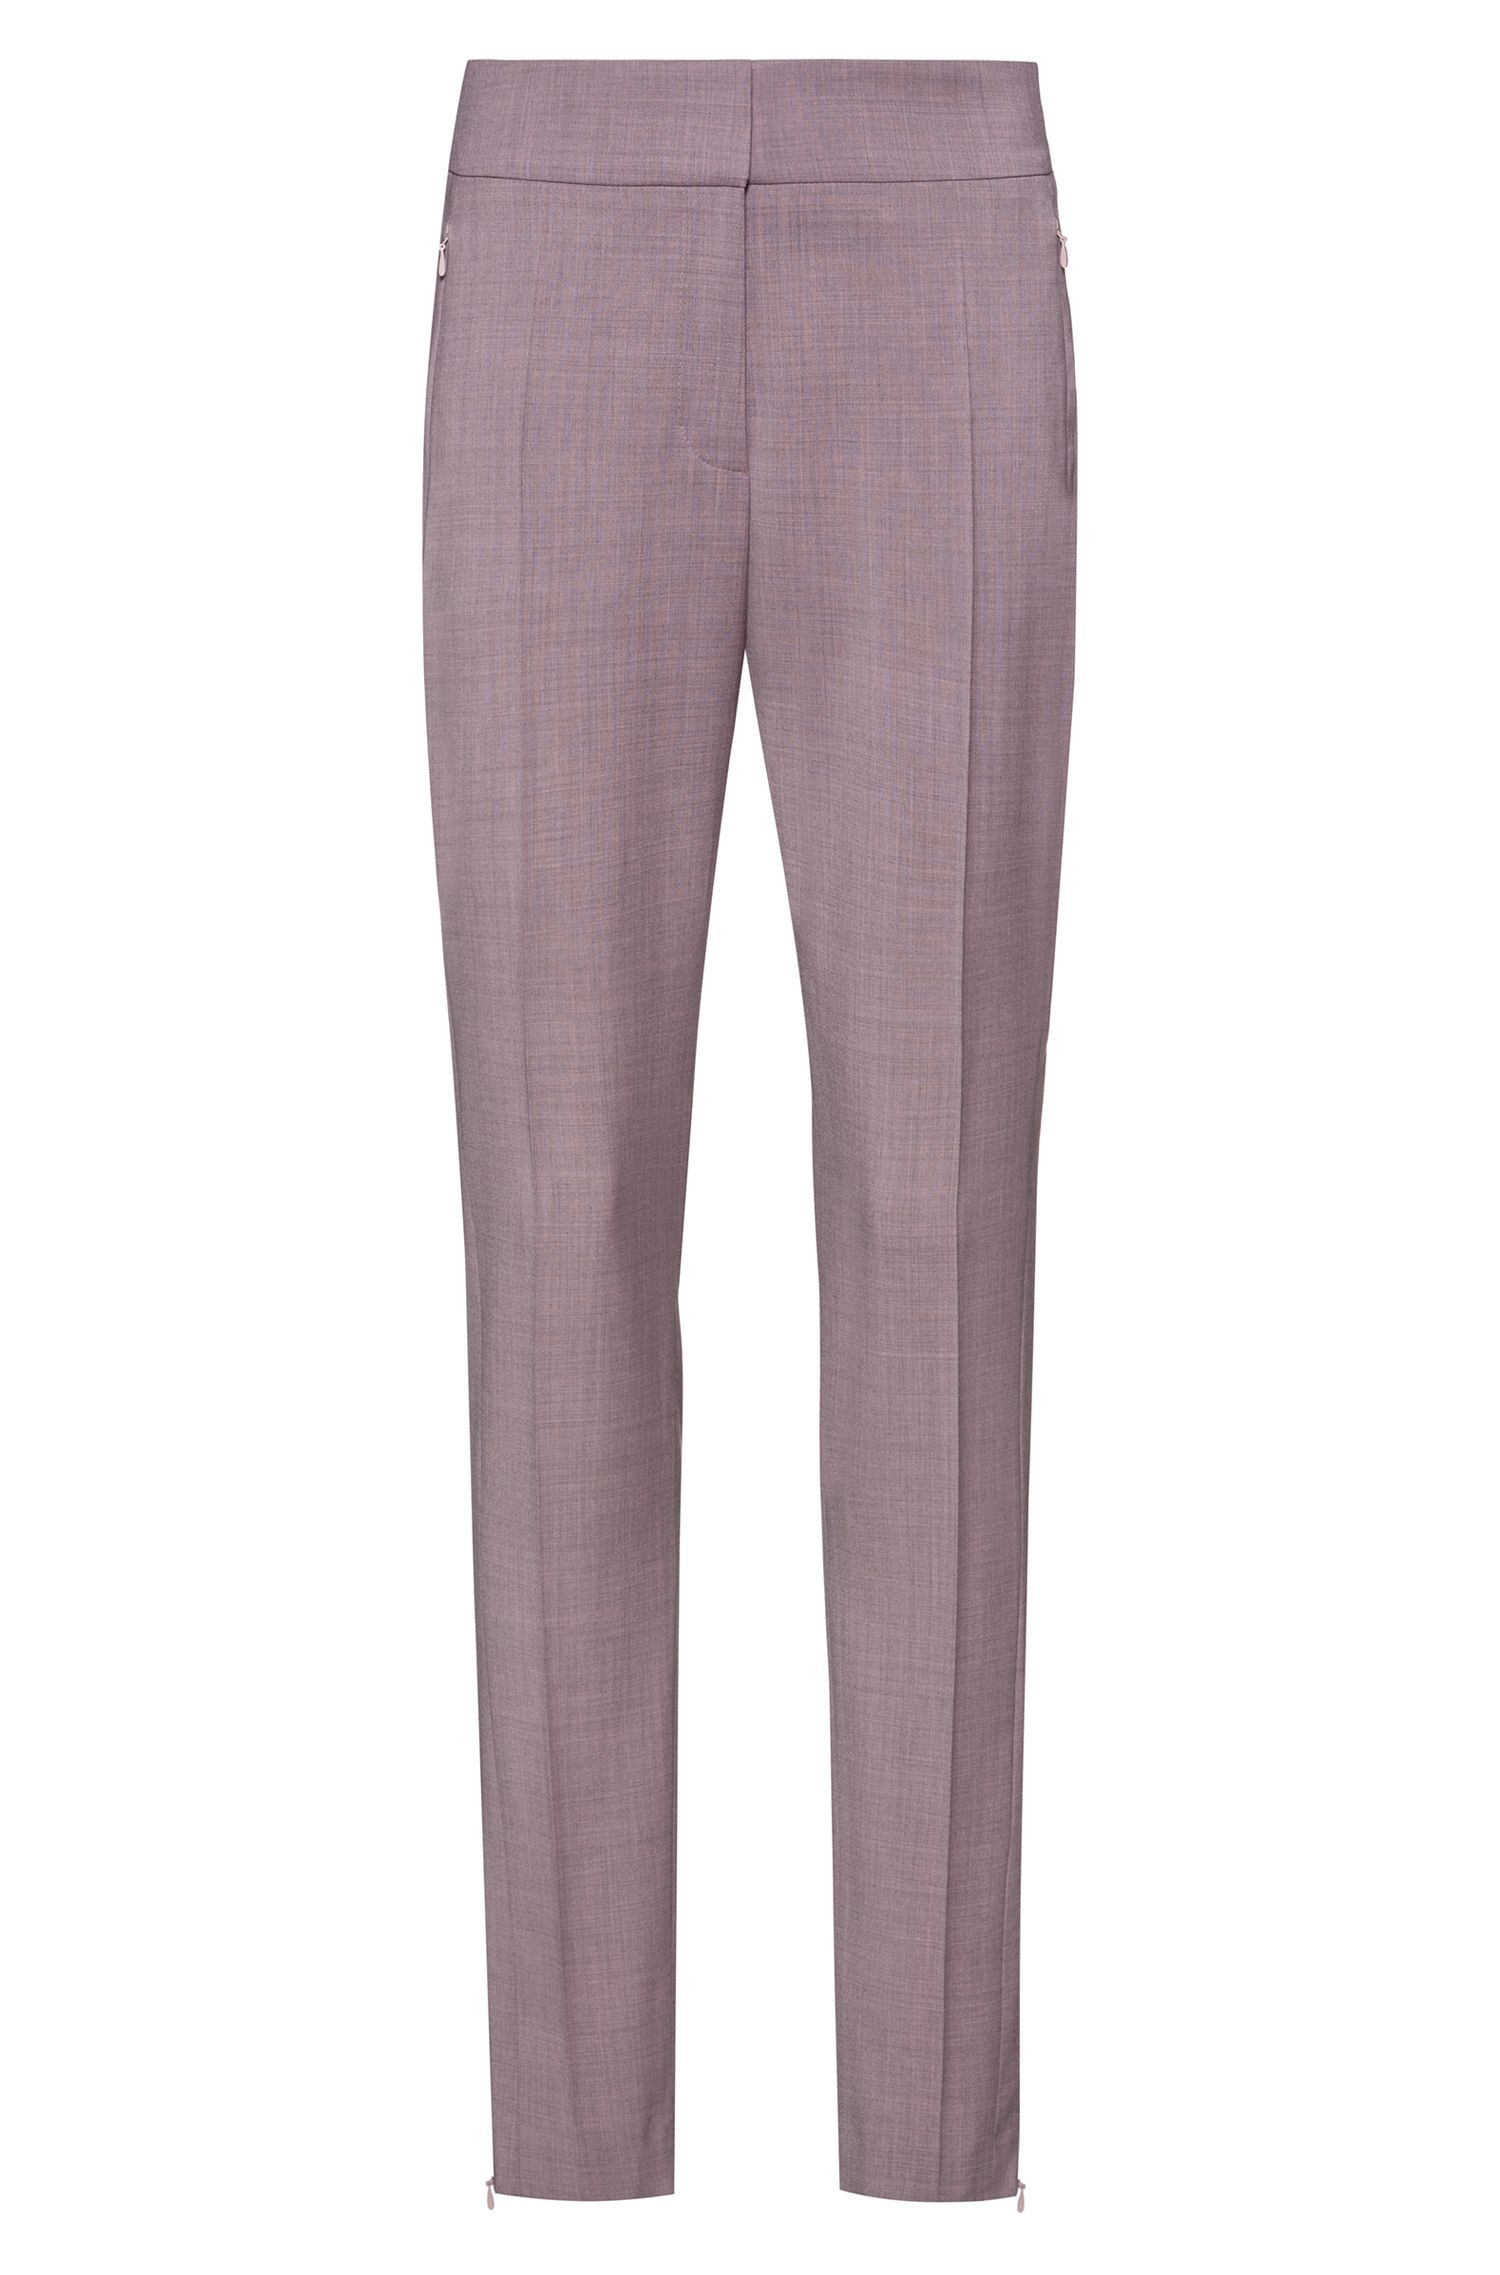 Fashion Show slim-leg pants with zippered hems, light pink